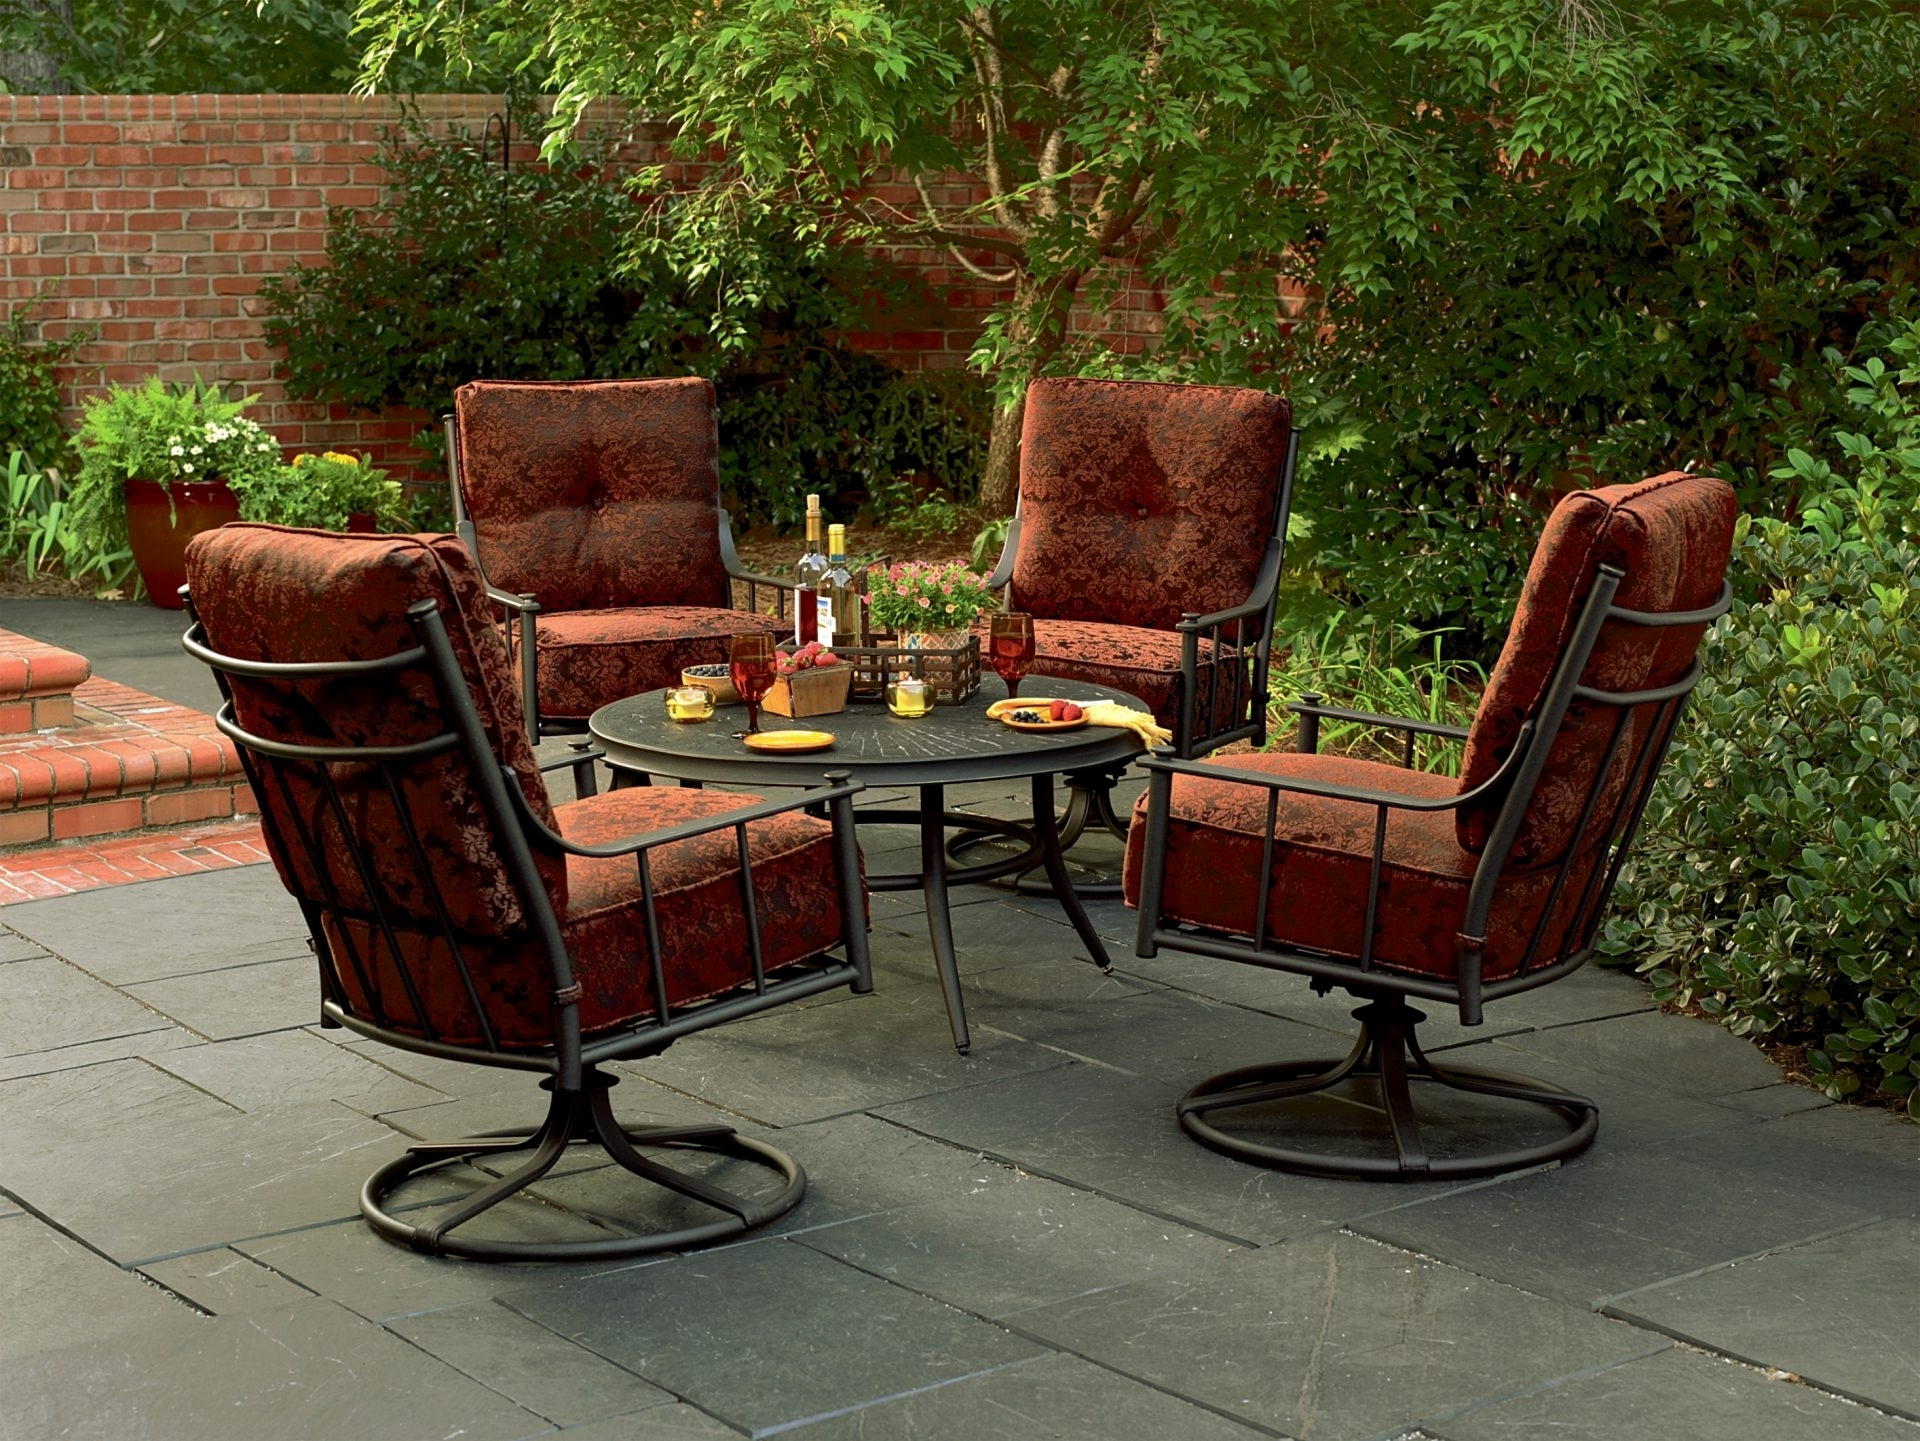 Widely Used Patio Conversation Sets With Swivel Chairs F53X On Creative Small Inside Patio Conversation Sets For Small Spaces (View 20 of 20)